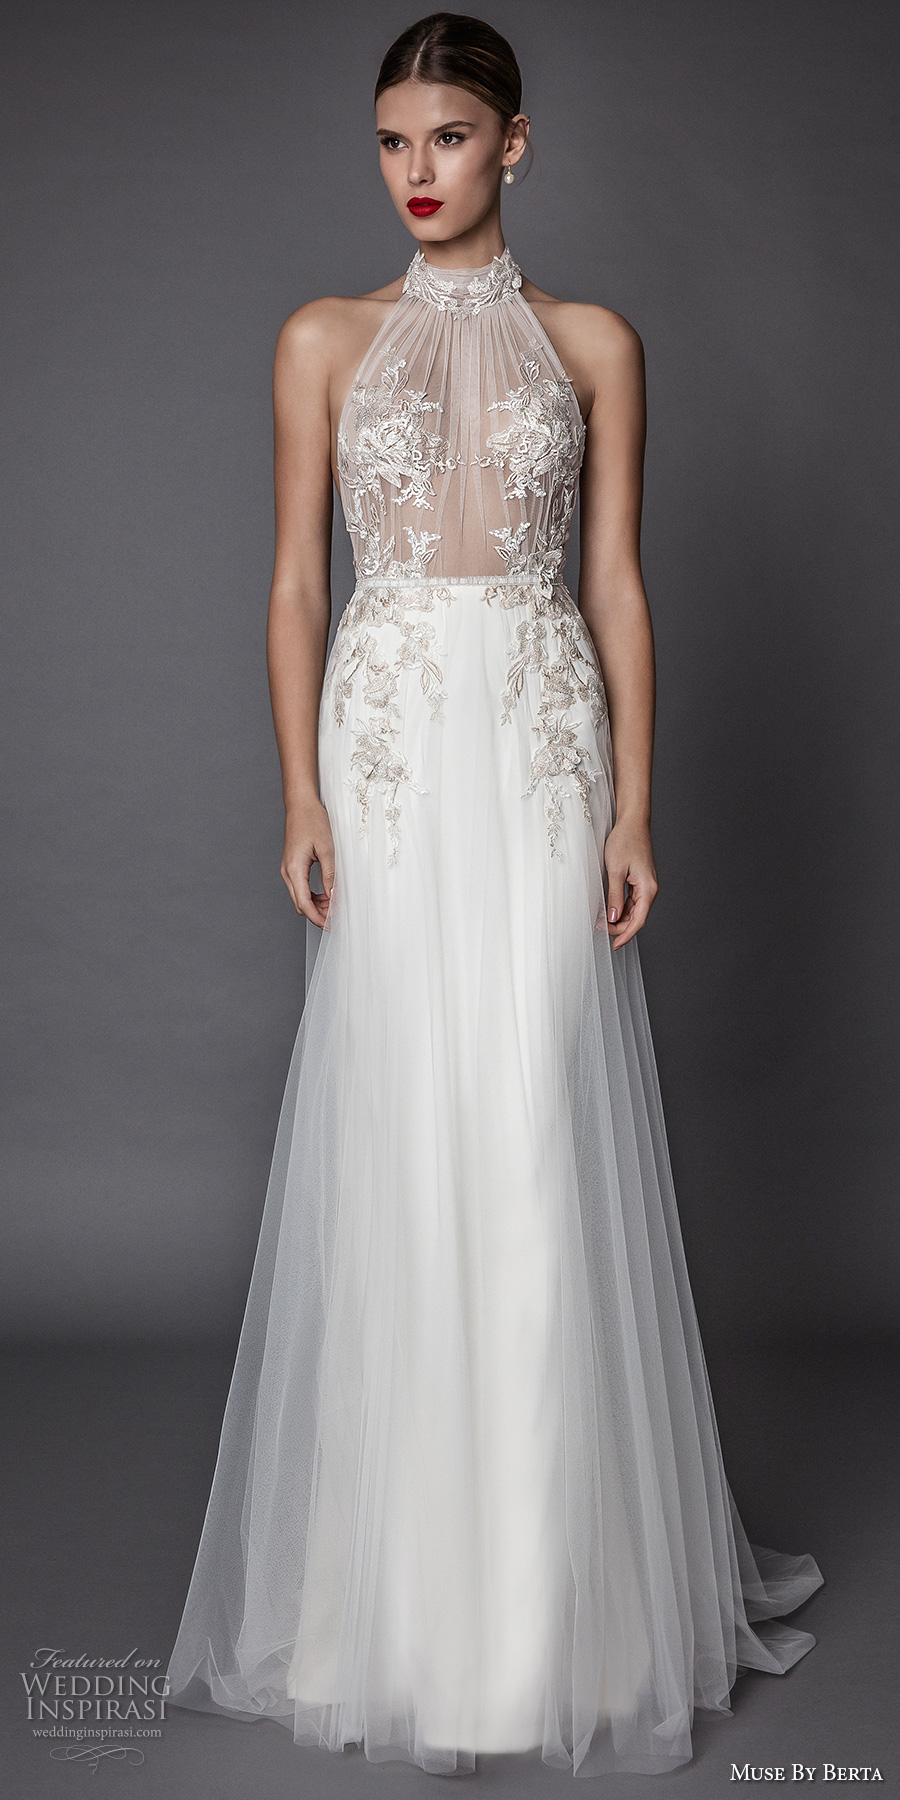 halter wedding dress muse by berta fall 2017 wedding dresses part 2 crazyforus 4687